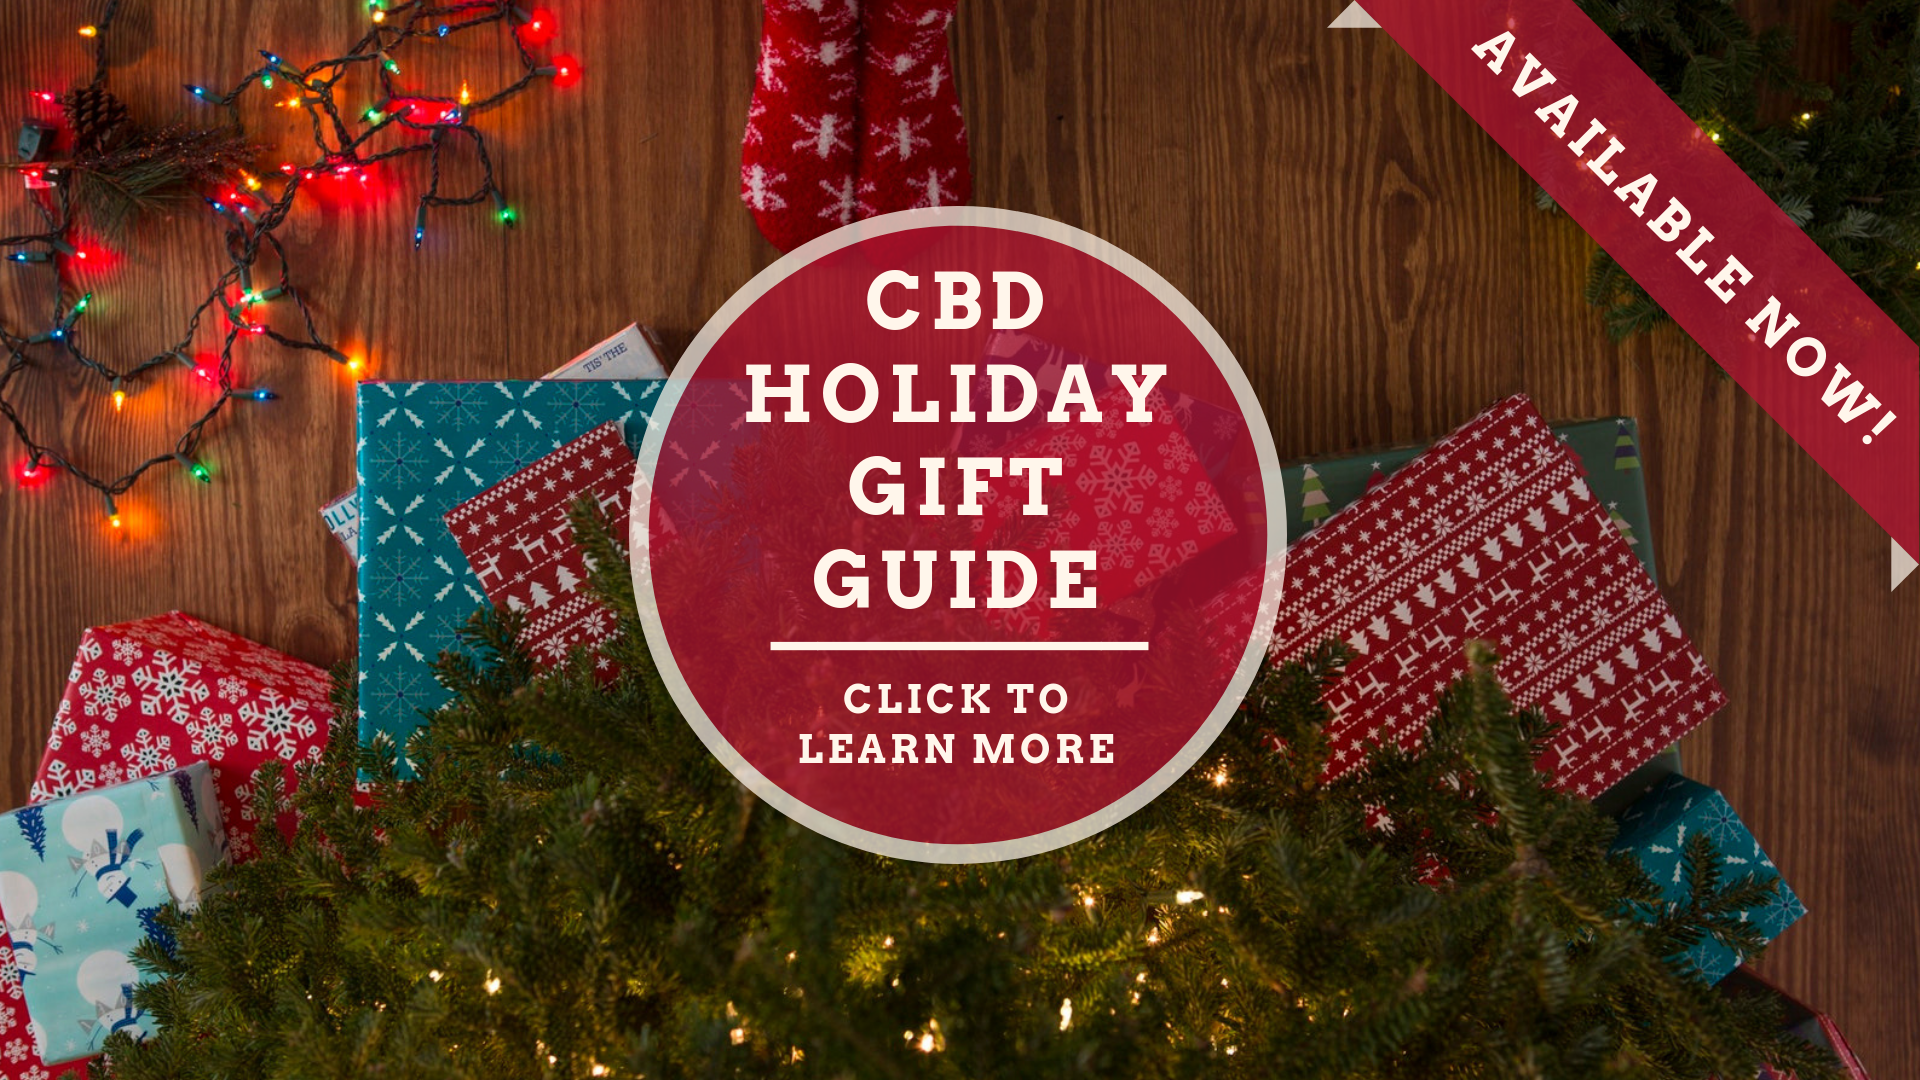 cbd holiday gift guide for best christmas presents